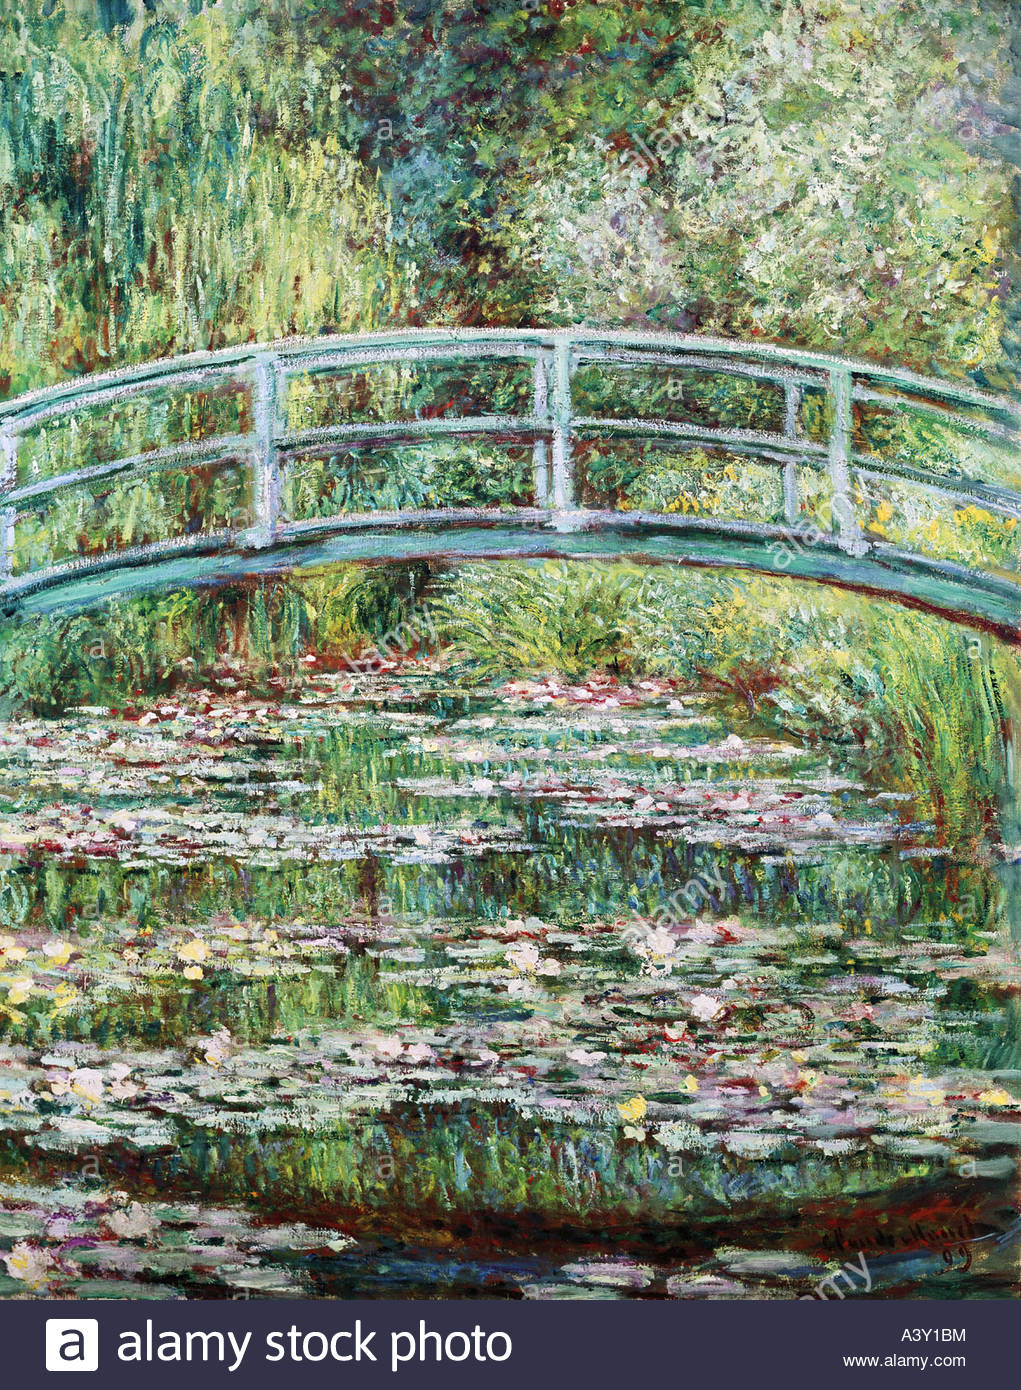 """fine arts, Monet, Claude, (1840 - 1926), painting, ""Pont Japonais a Giverny"", (""Japanese bridge at Giverny""), 1899, Stock Foto"